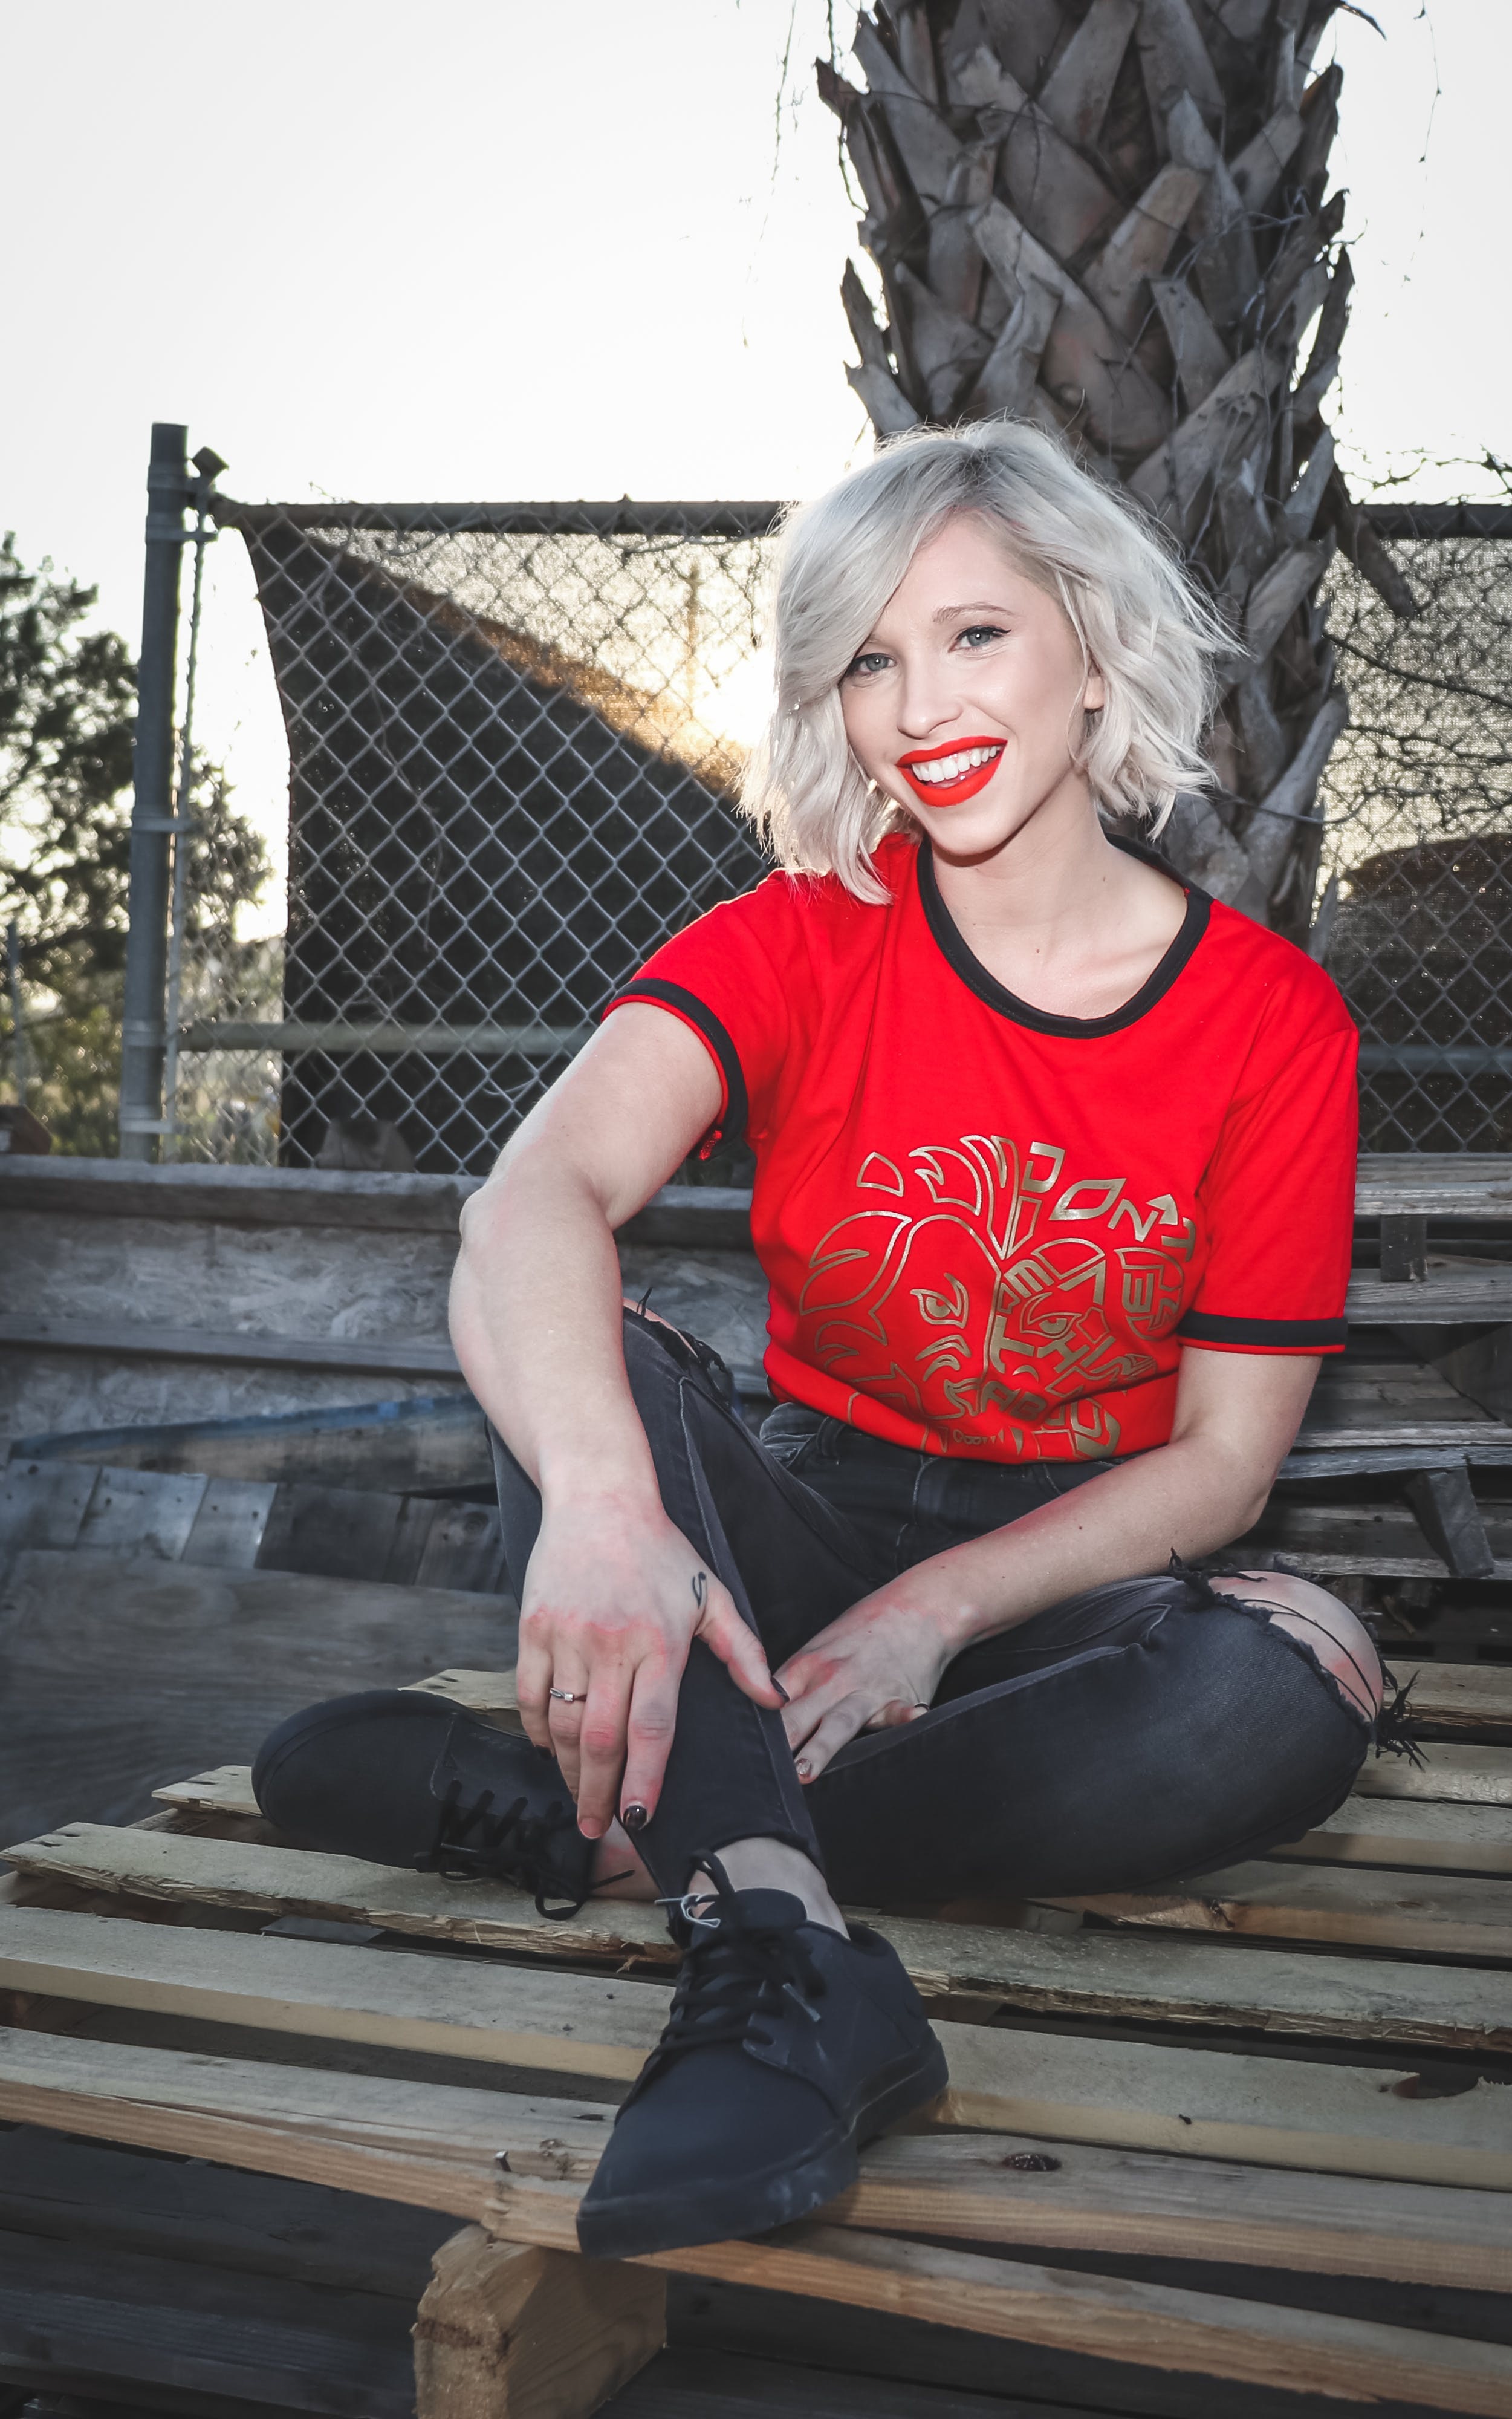 Woman Sit on Pallet Wearing Crew-neck T-shirt and Distressed Black Fitted Jeans